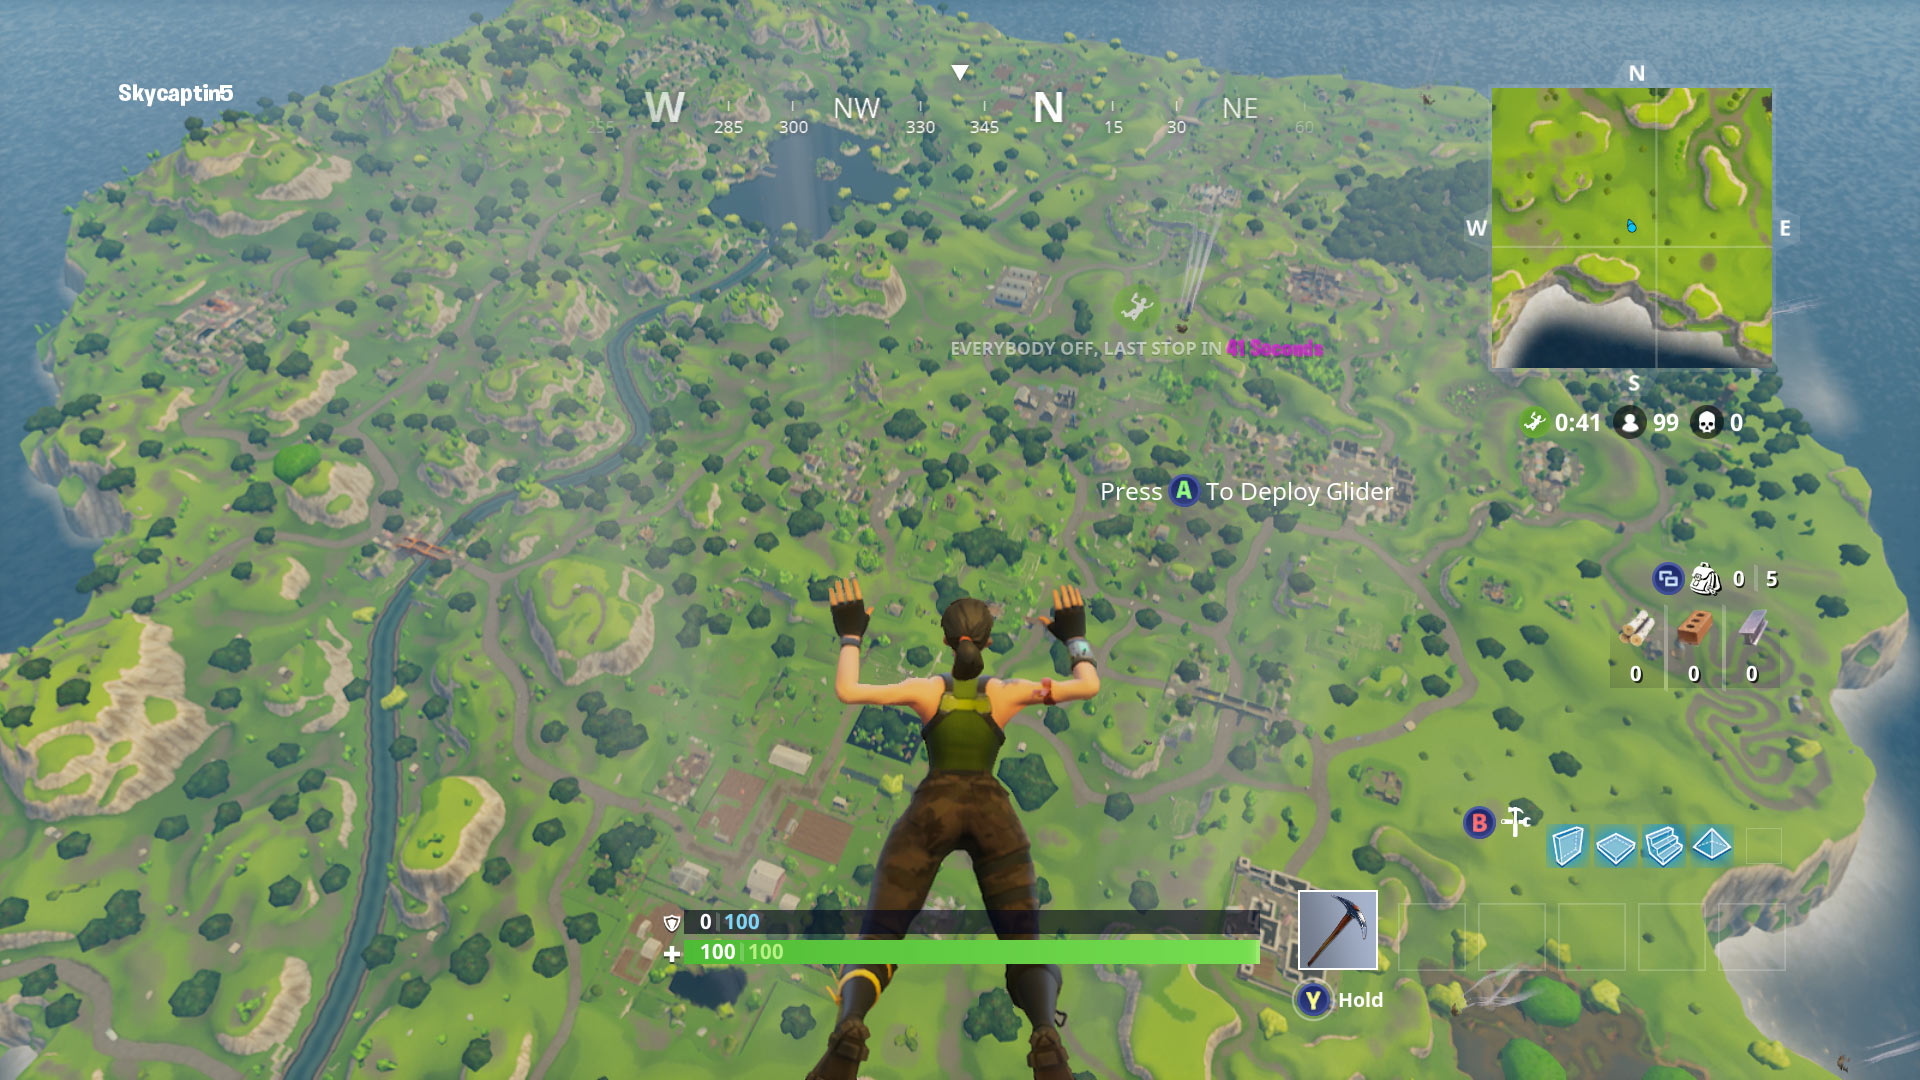 El Battle Royale De Fortnite Sera Un Juego Gratis Independiente